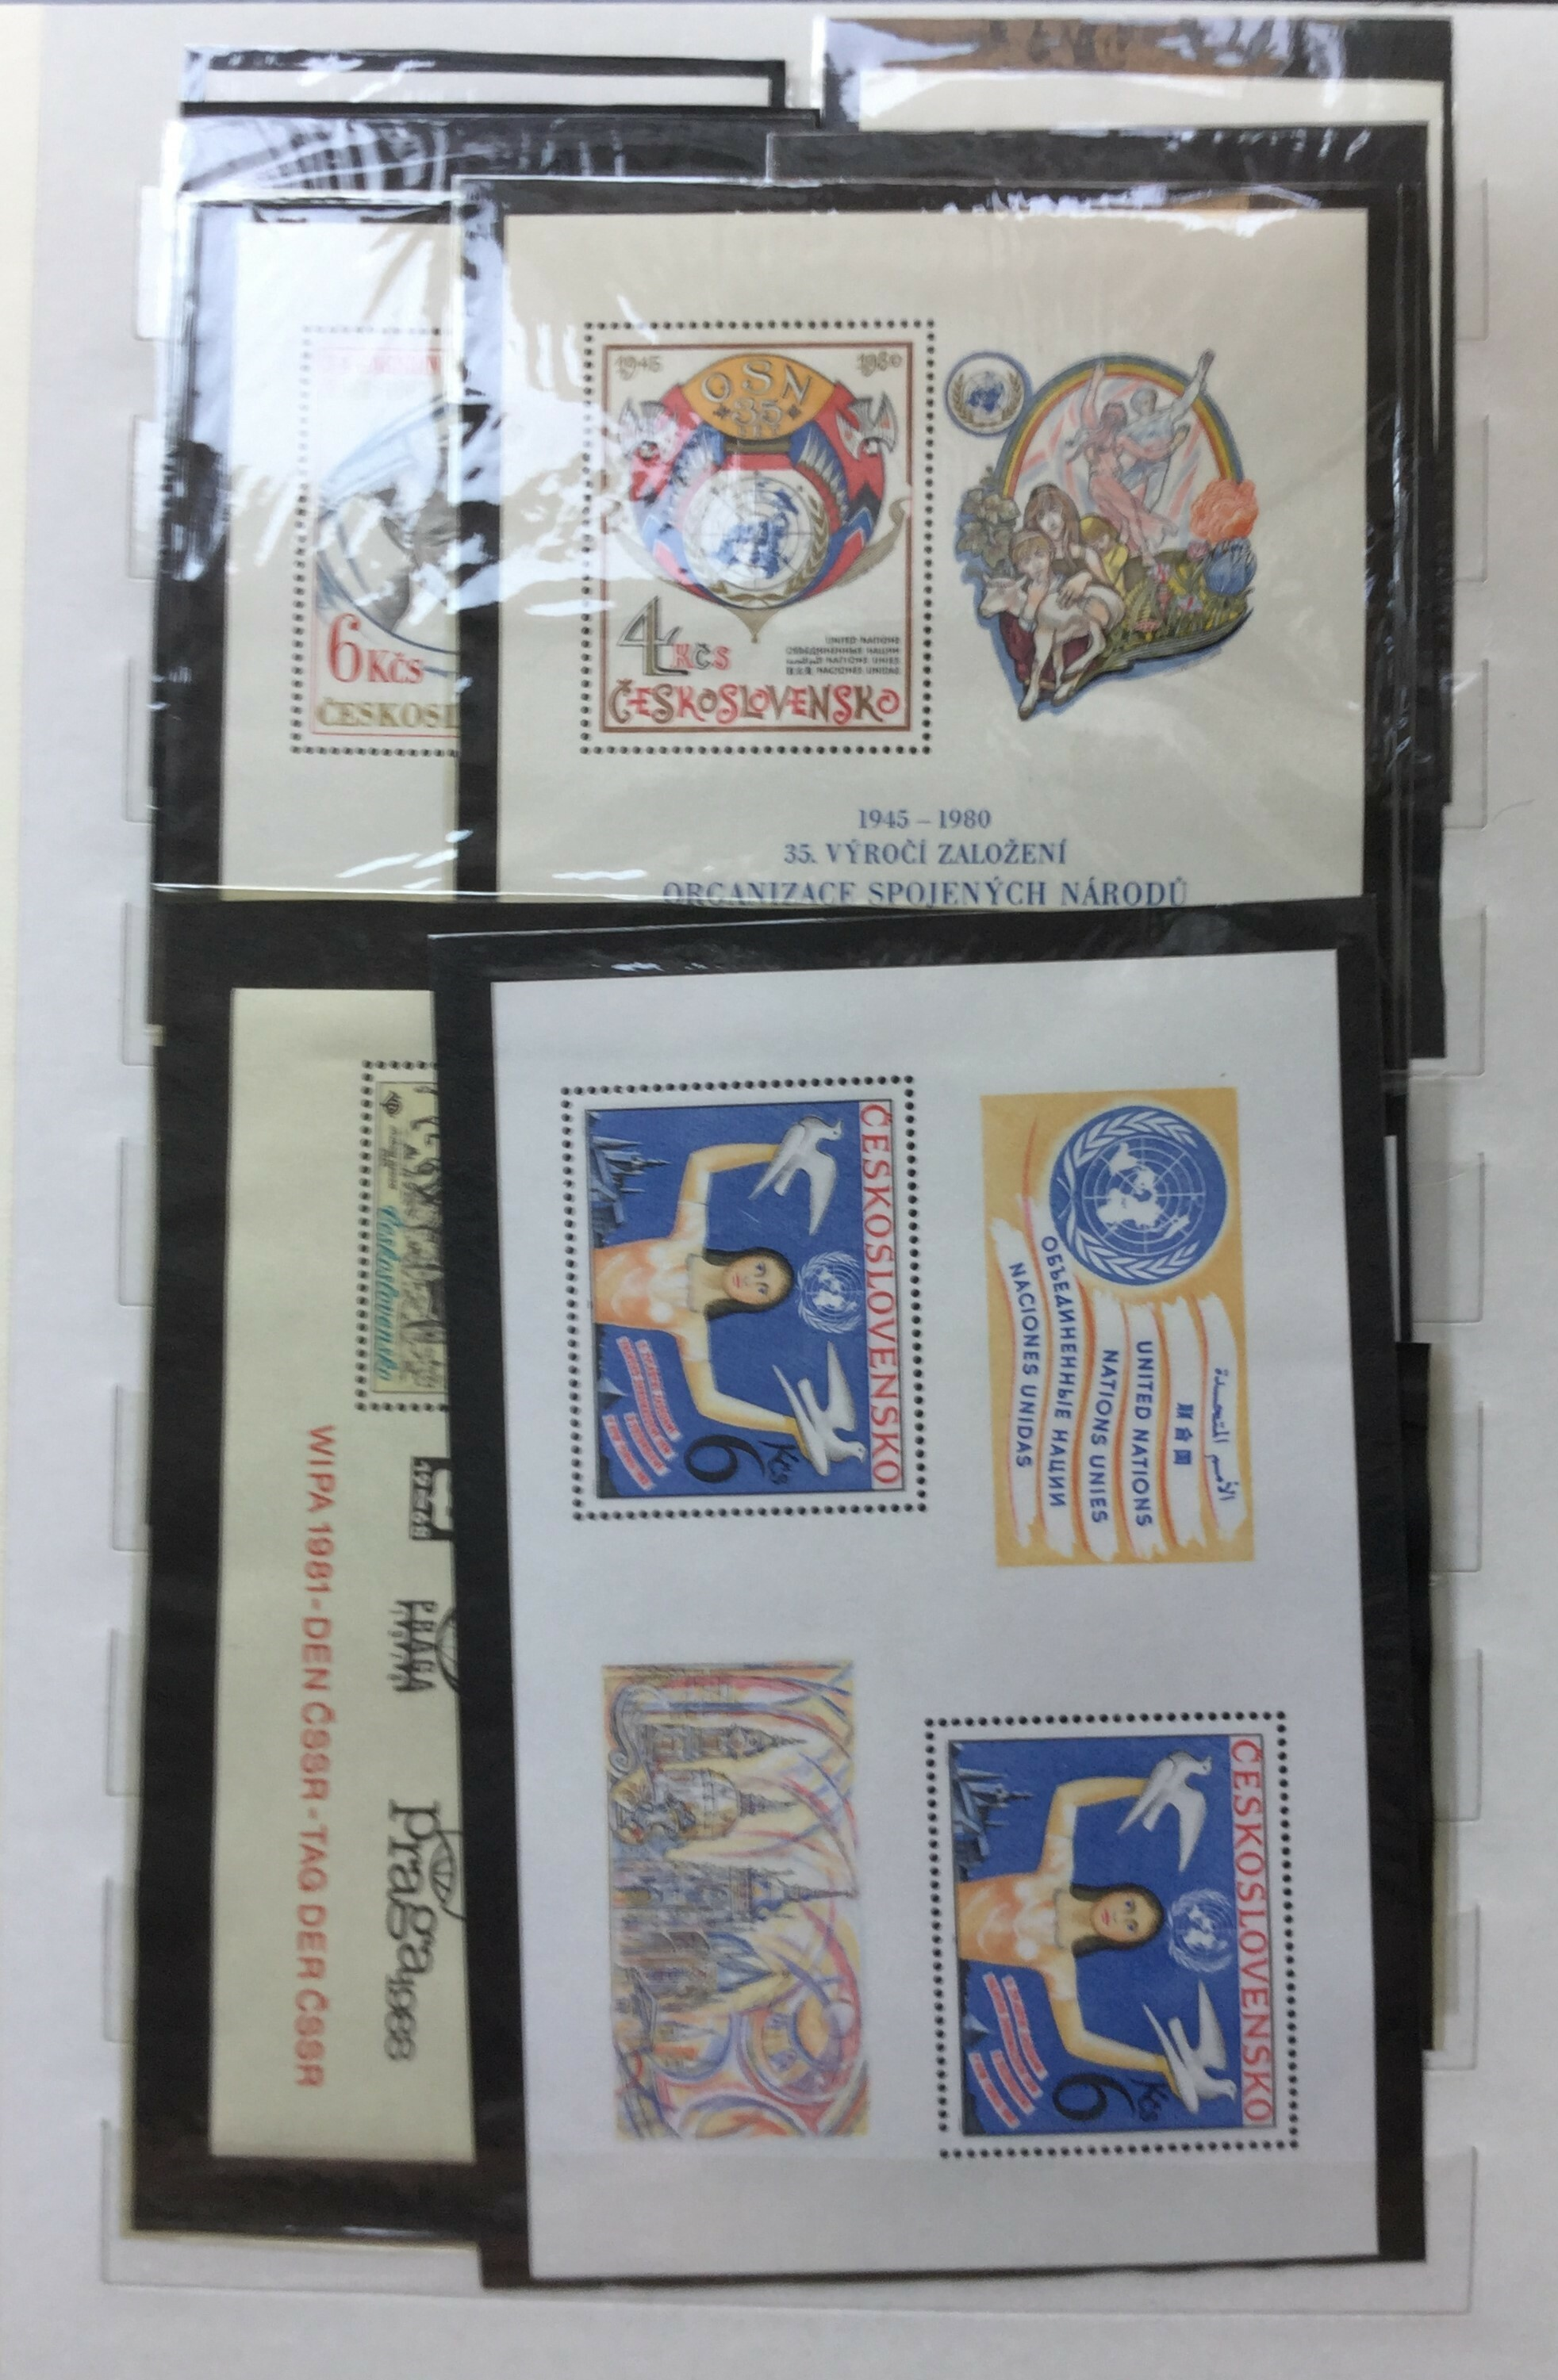 Lot 2520 - CECOSLOVACCHIA Lots & Collections -  Ponte Auction House Stamps Auction 505